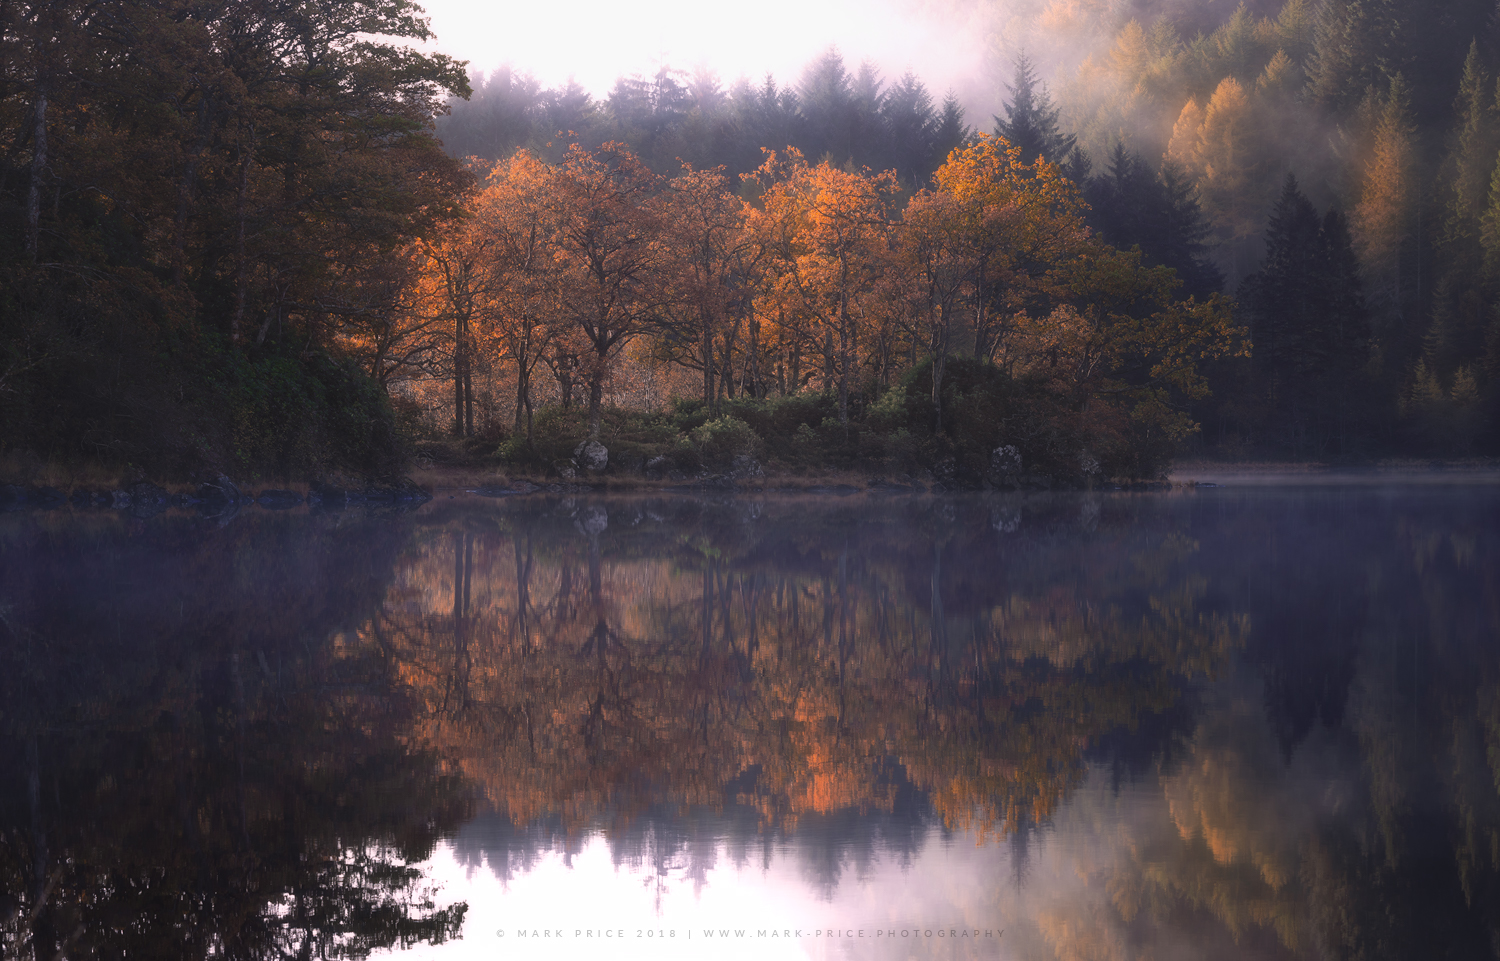 Autumn in full flow at a quiet Scottish loch